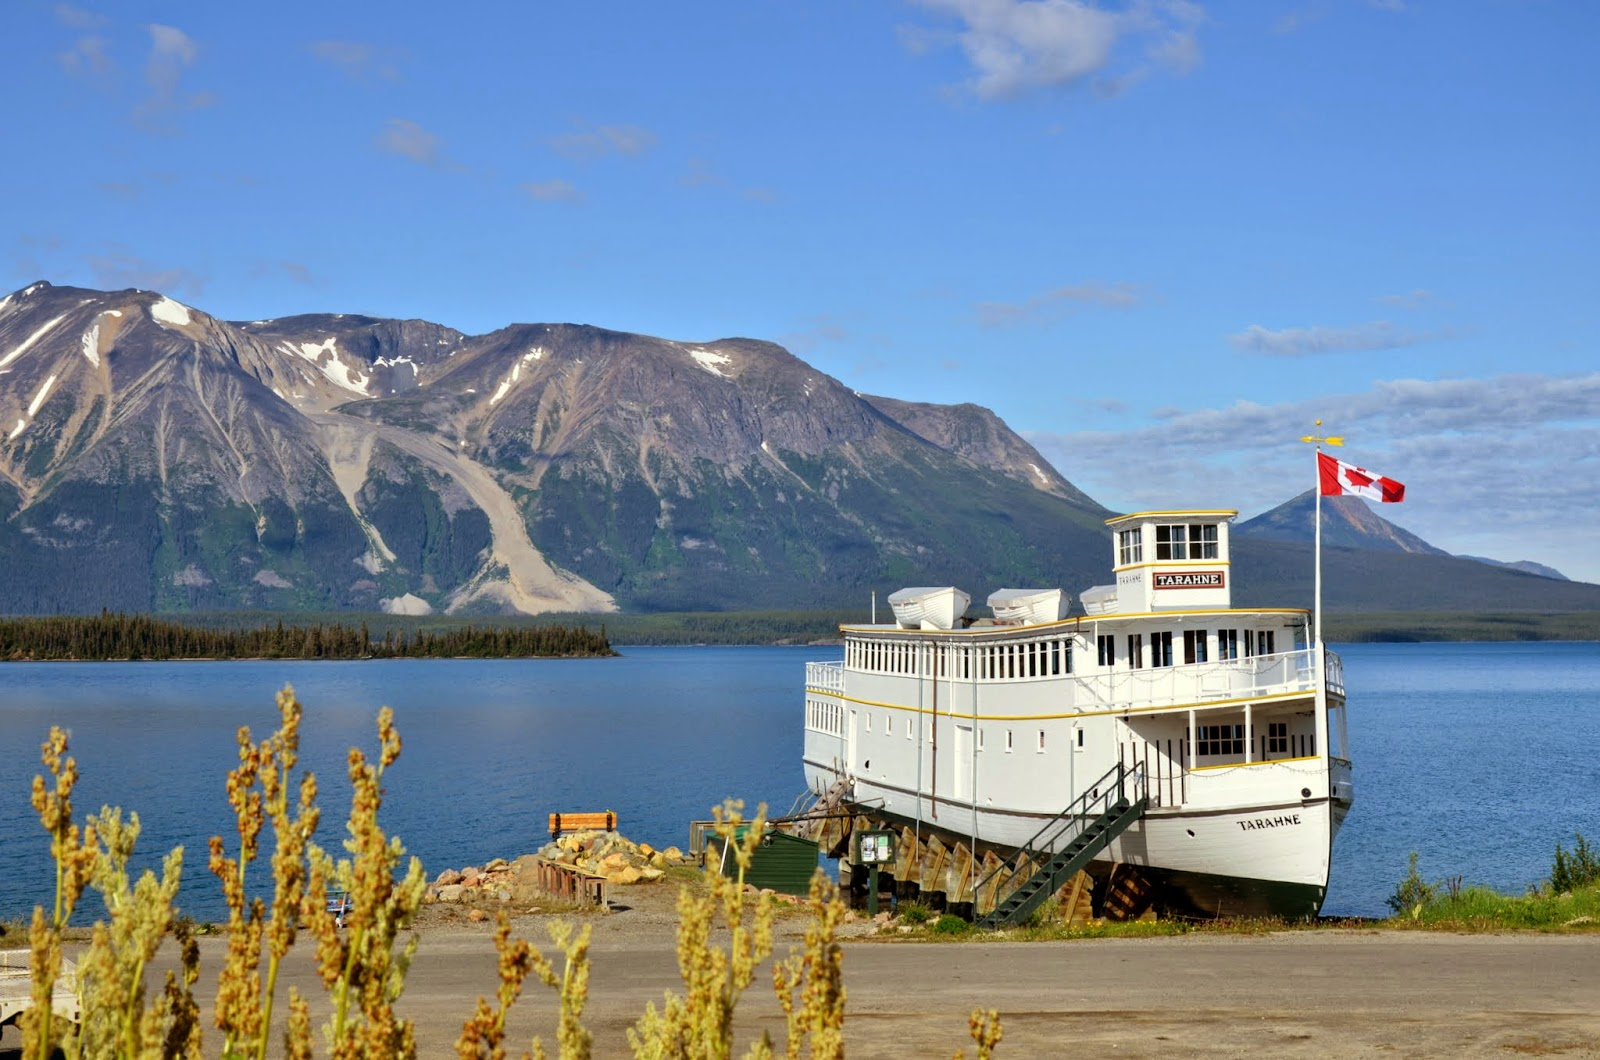 MV Tarahne on the shore of Lake Atlin